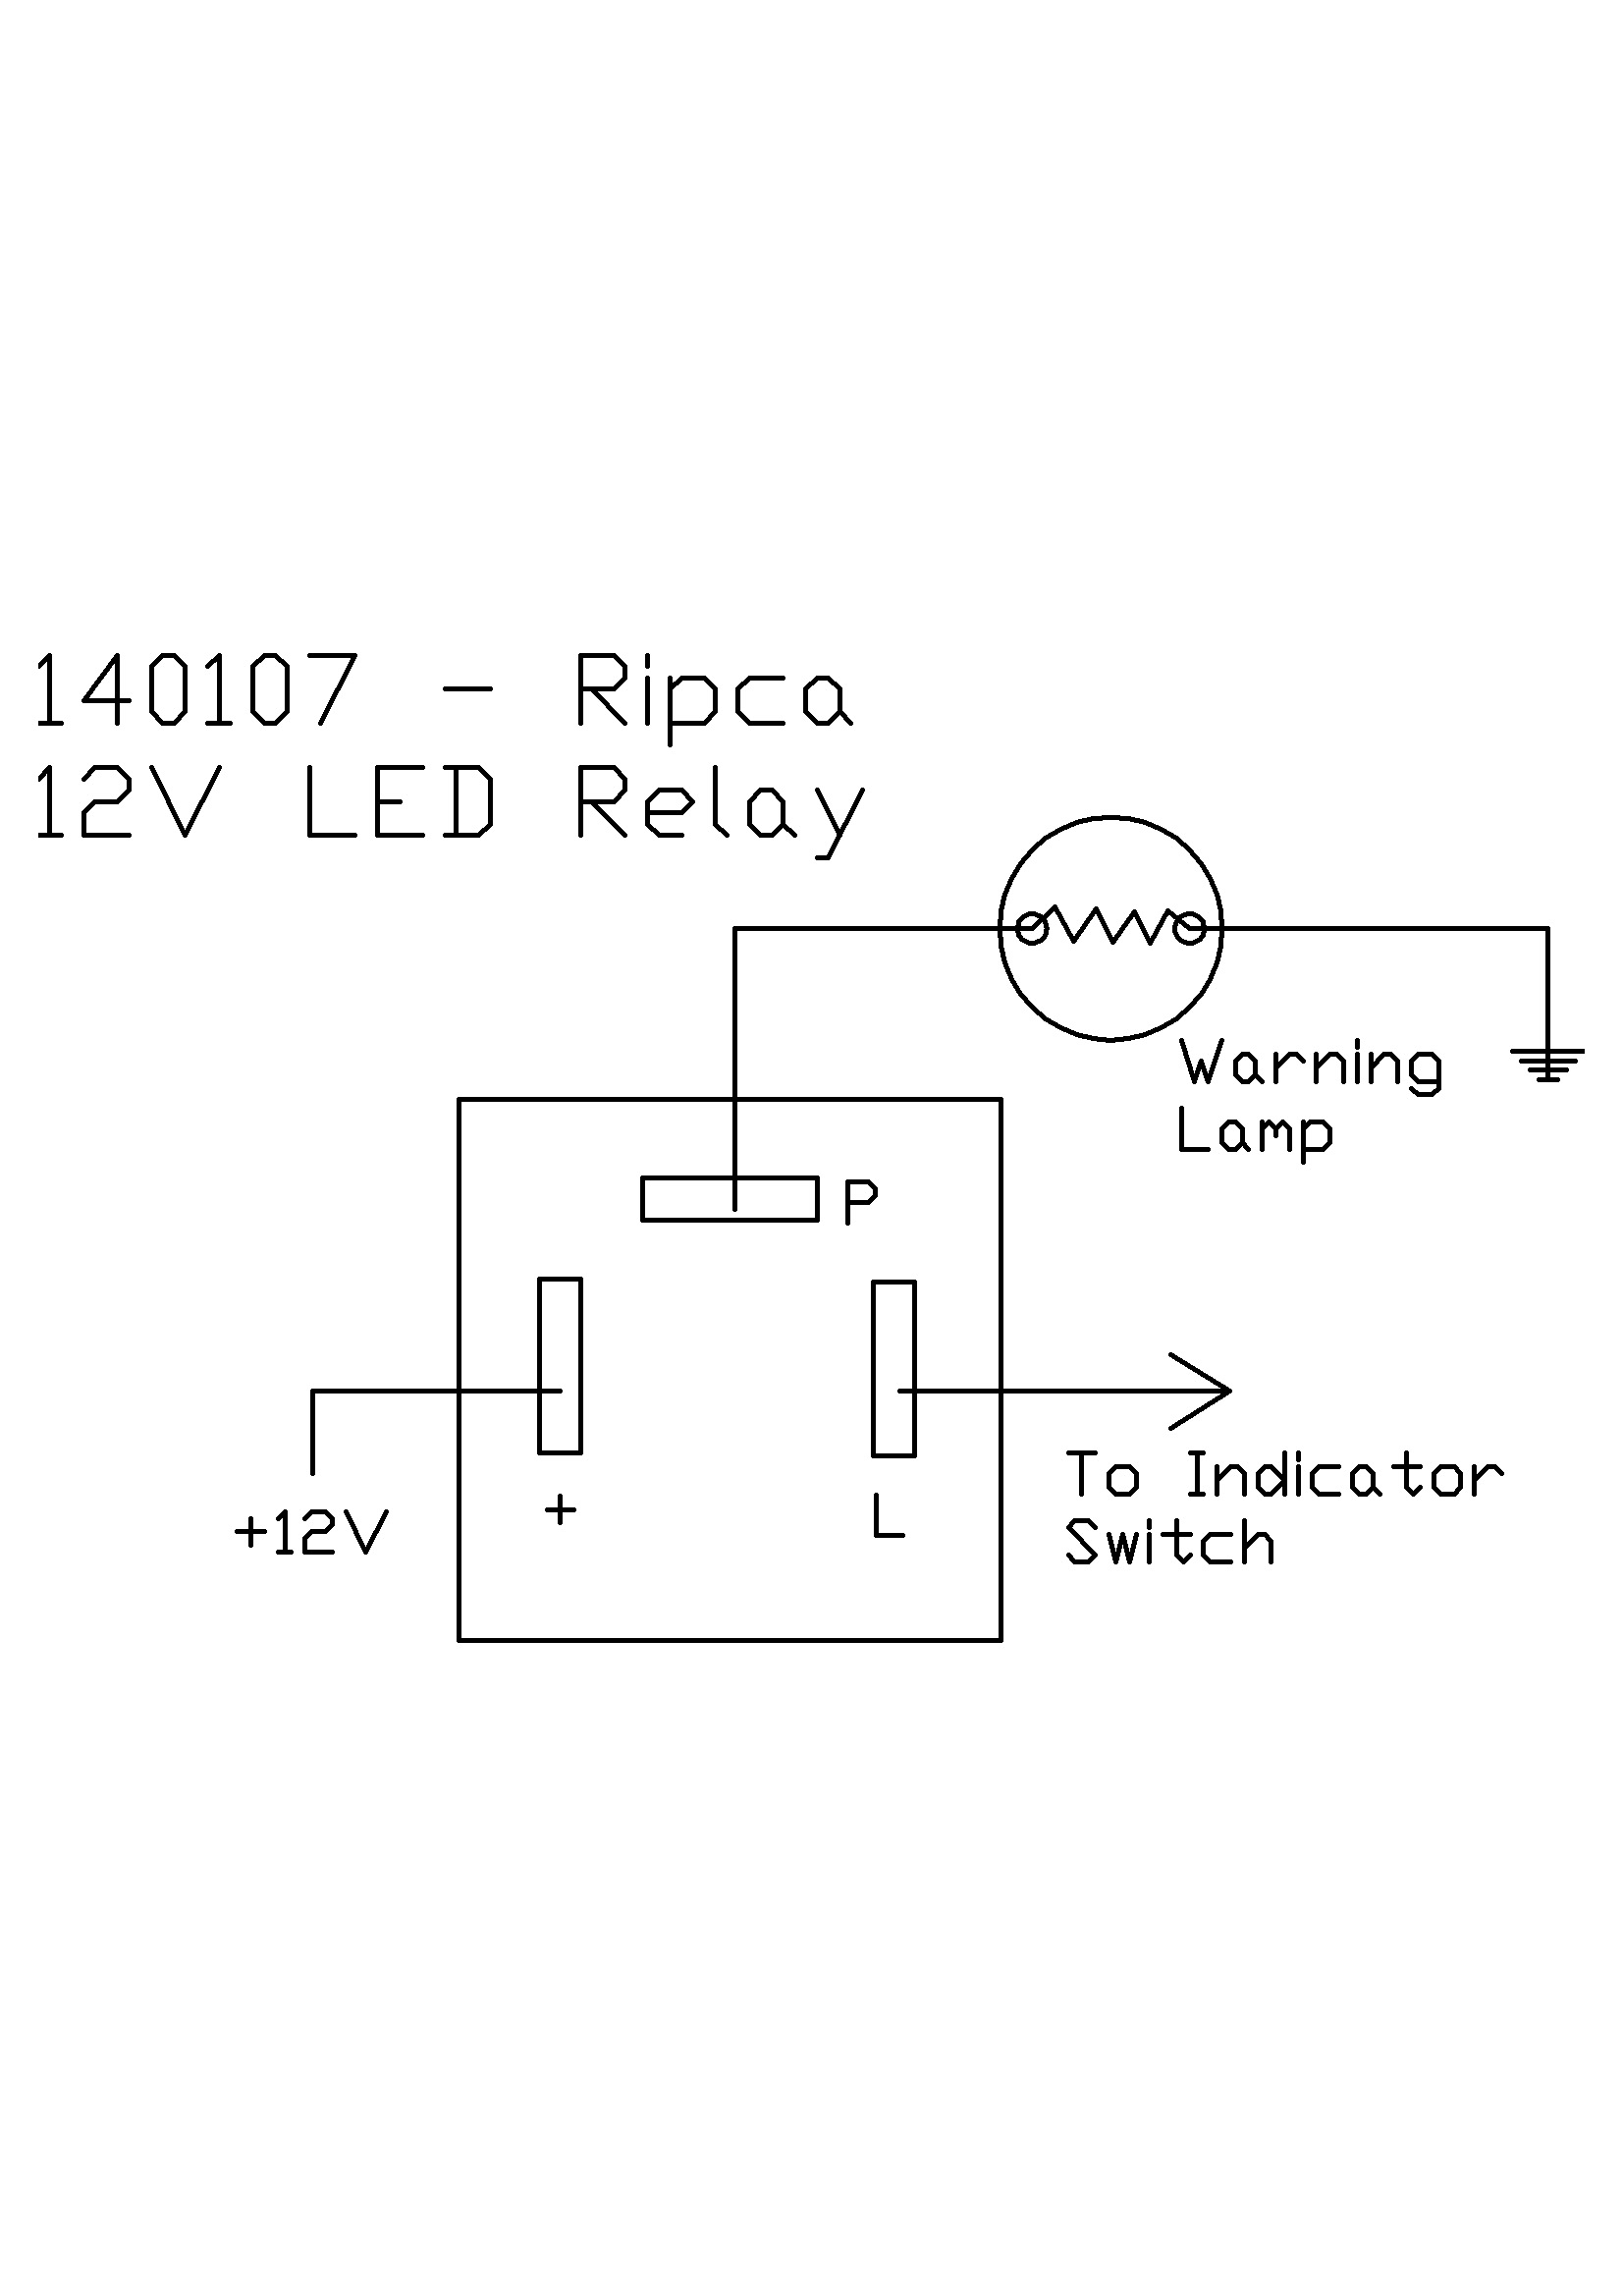 140107 ripca flasher unit wiring wiring diagram site